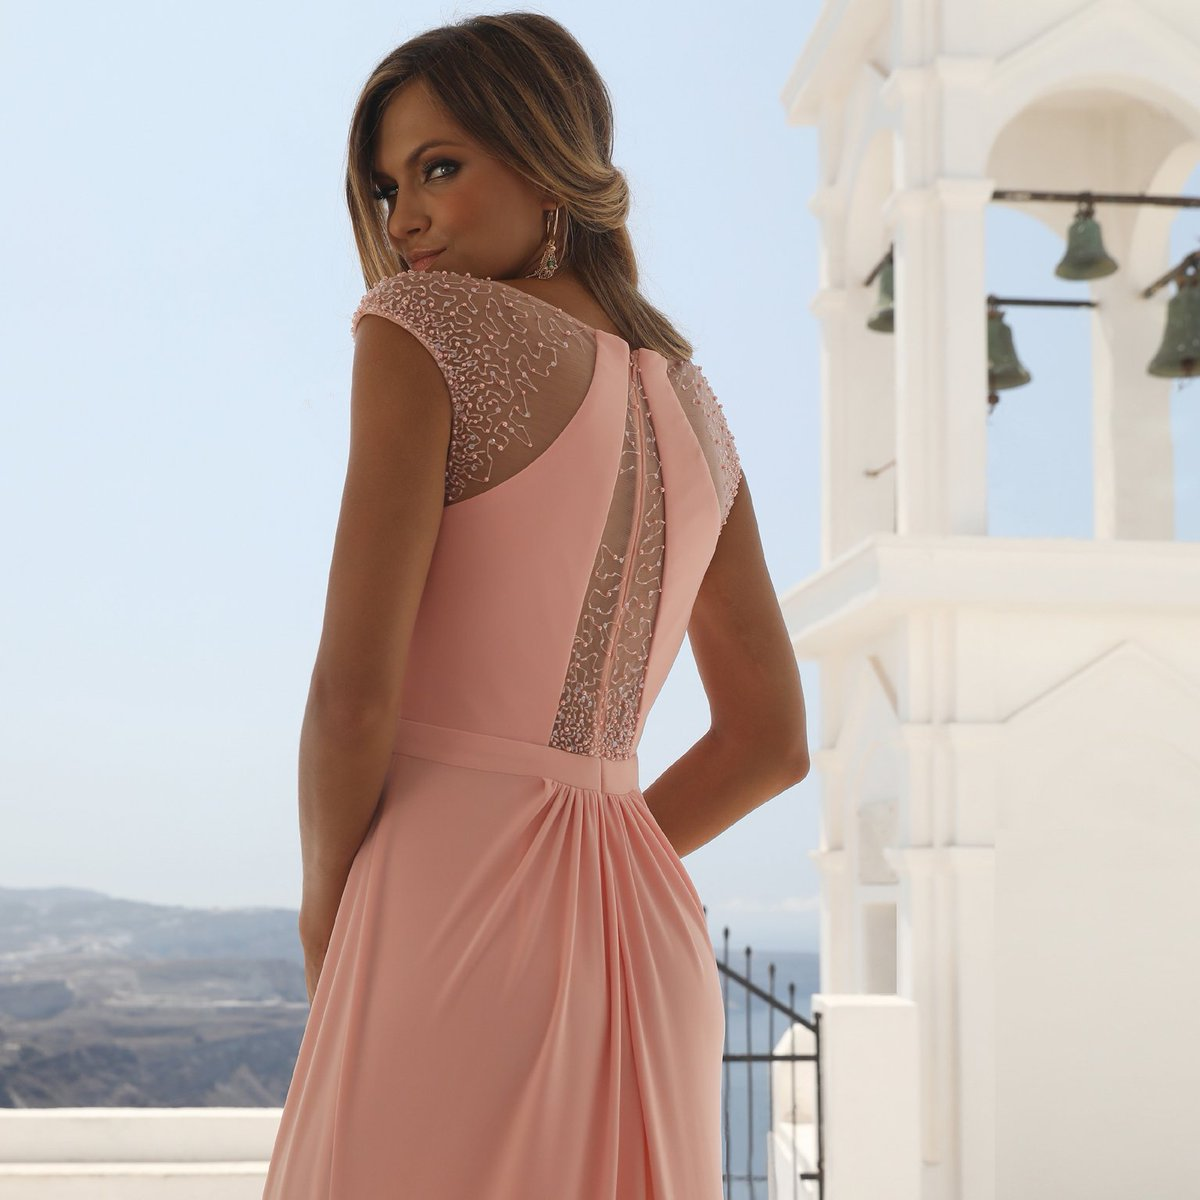 a6a253658a8181 specialoccasionwear hashtag on Twitter